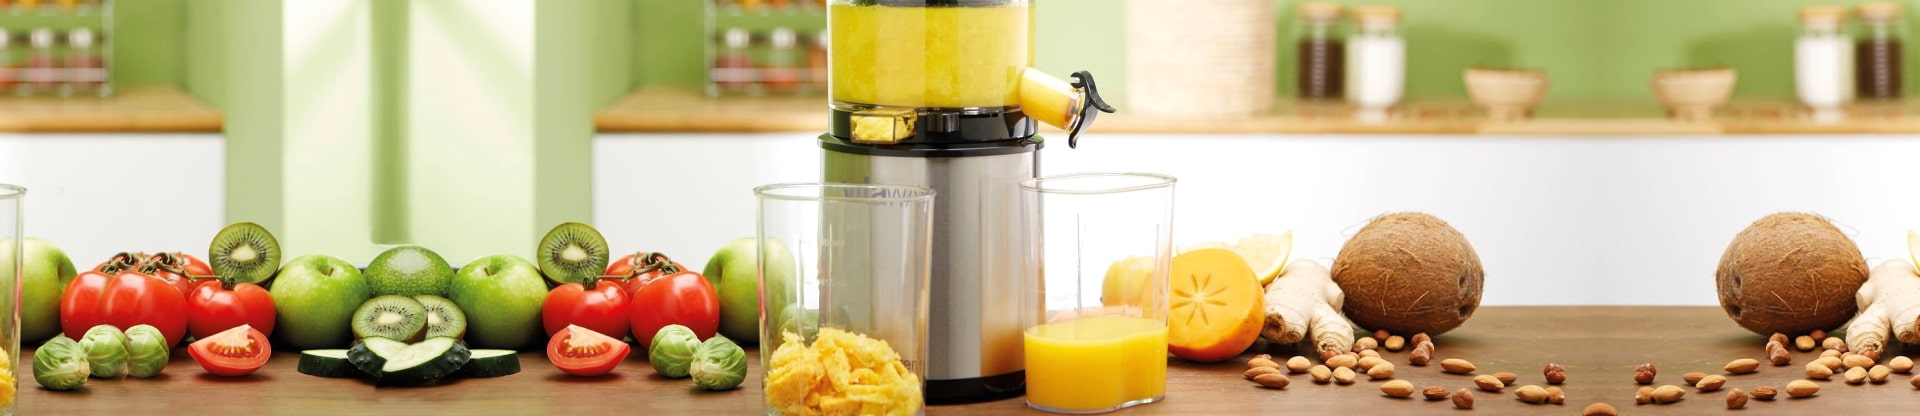 Best Juicers under $300